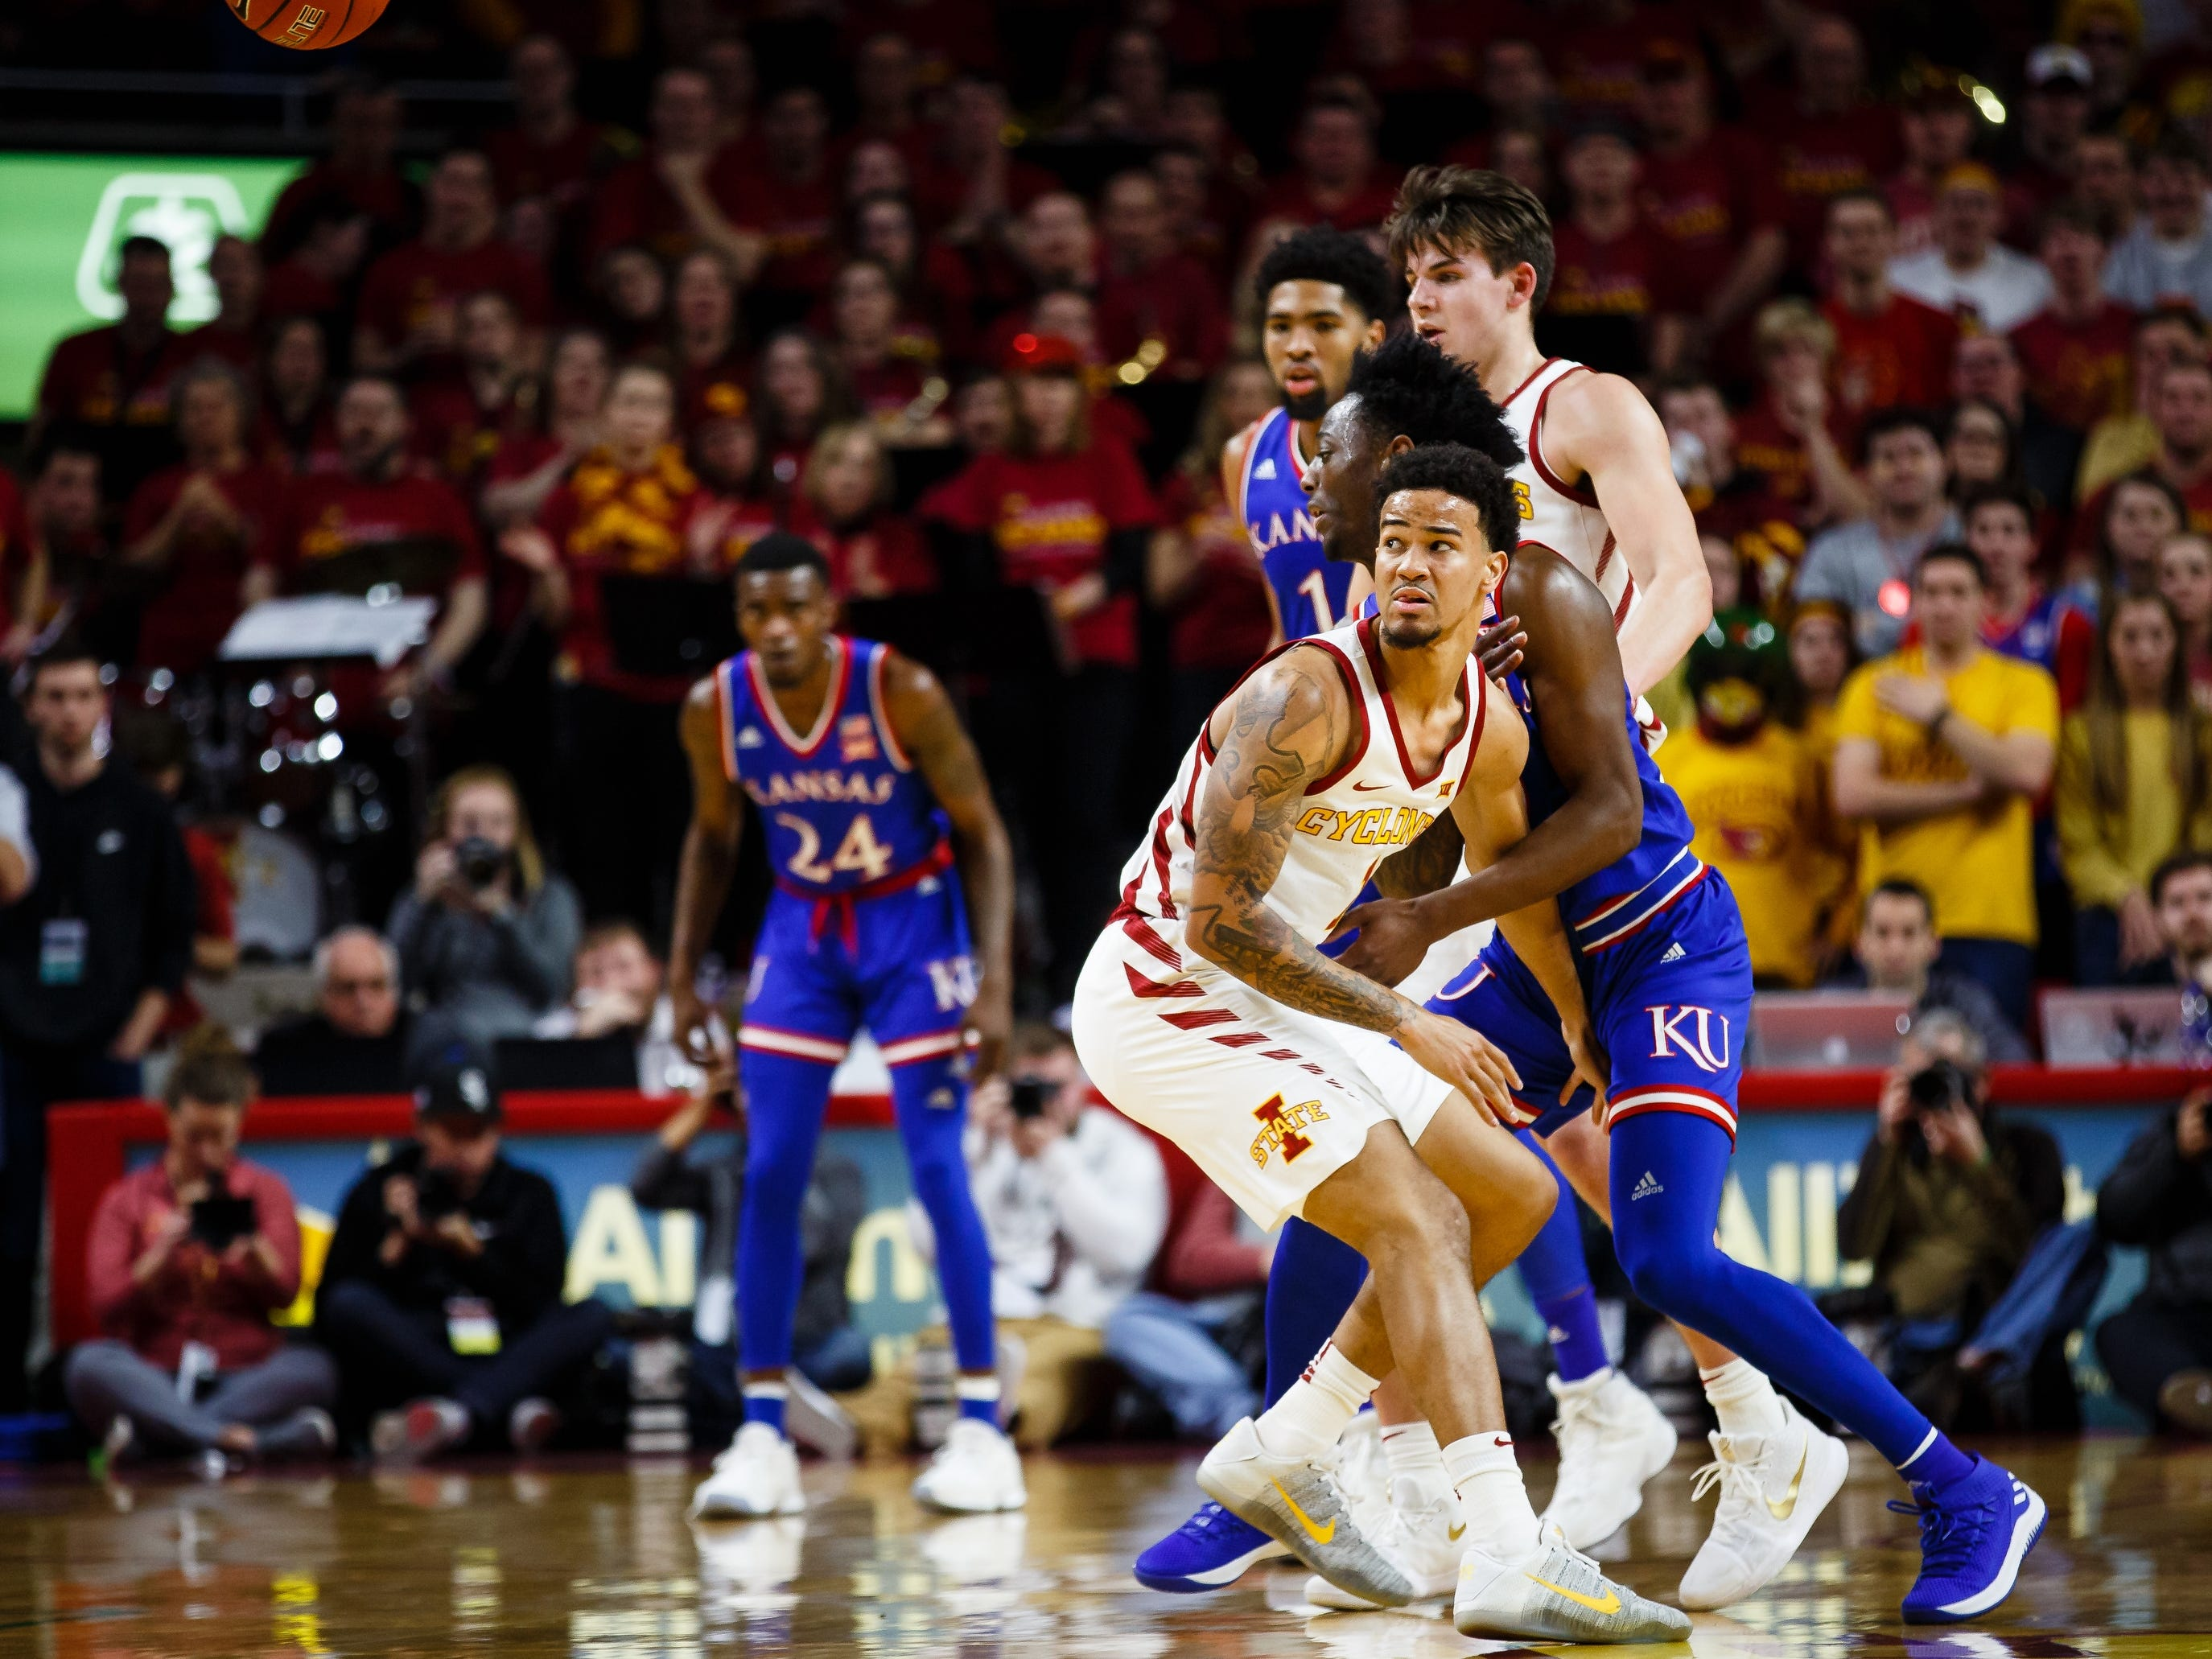 Iowa State's Nick Weiler-Babb (1) looks after a loose ball during the first half of their basketball game on Saturday, Jan. 5, 2019, in Ames. Iowa State would go on to defeat Kansas 77-60.